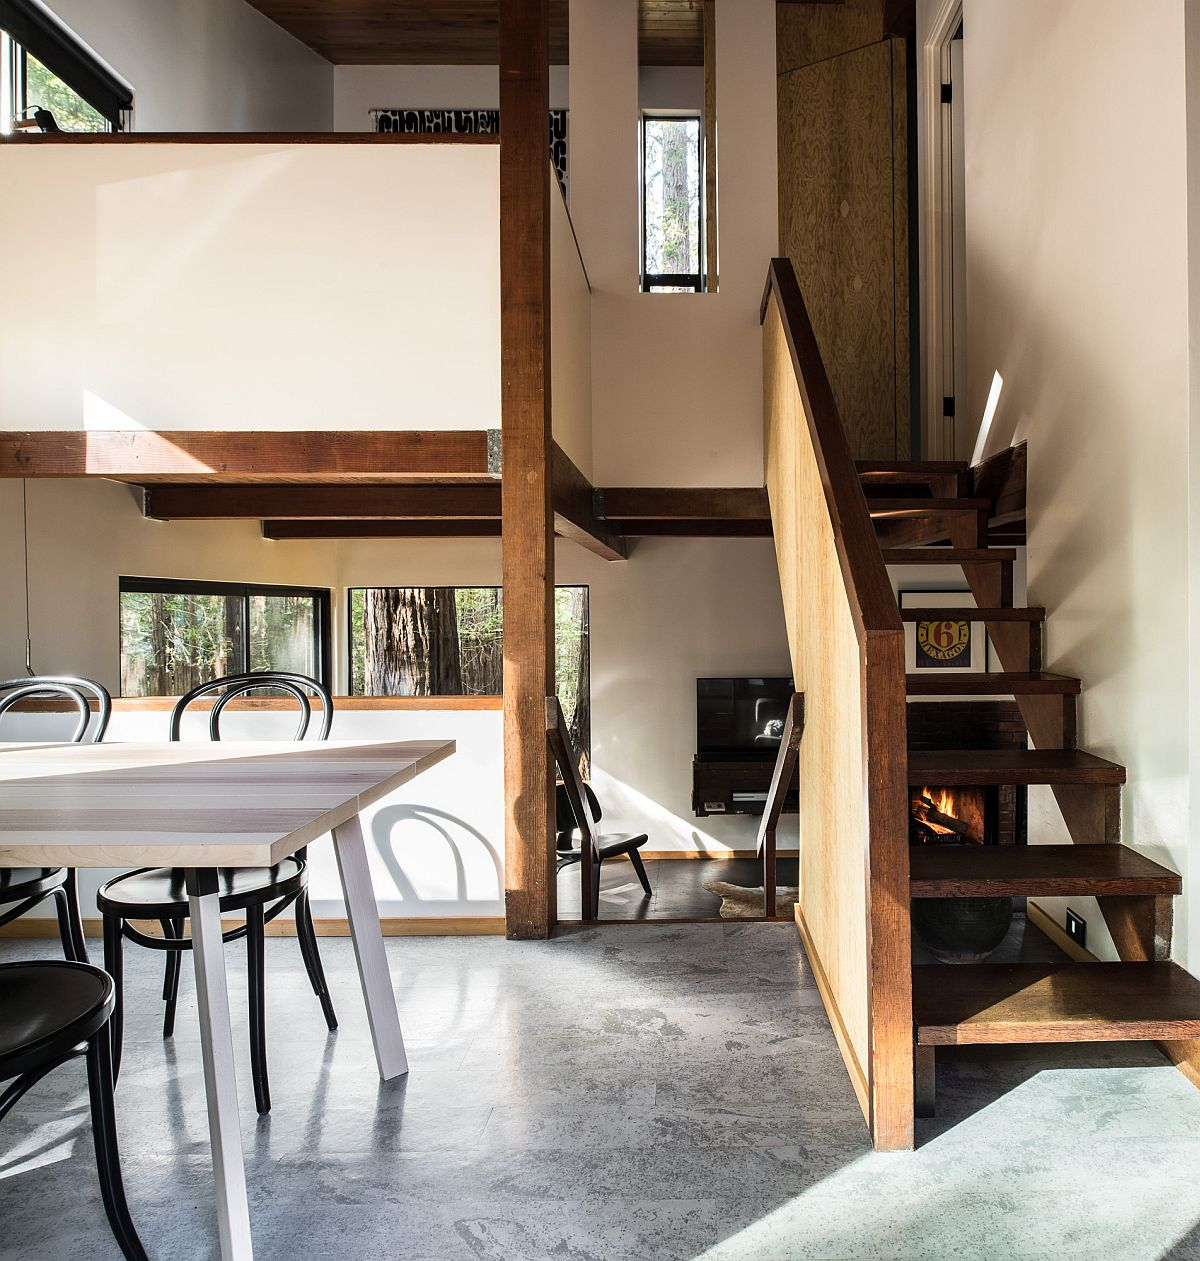 Gorgeous and modest interior of the Timber Ridge Sea Ranch Cabin